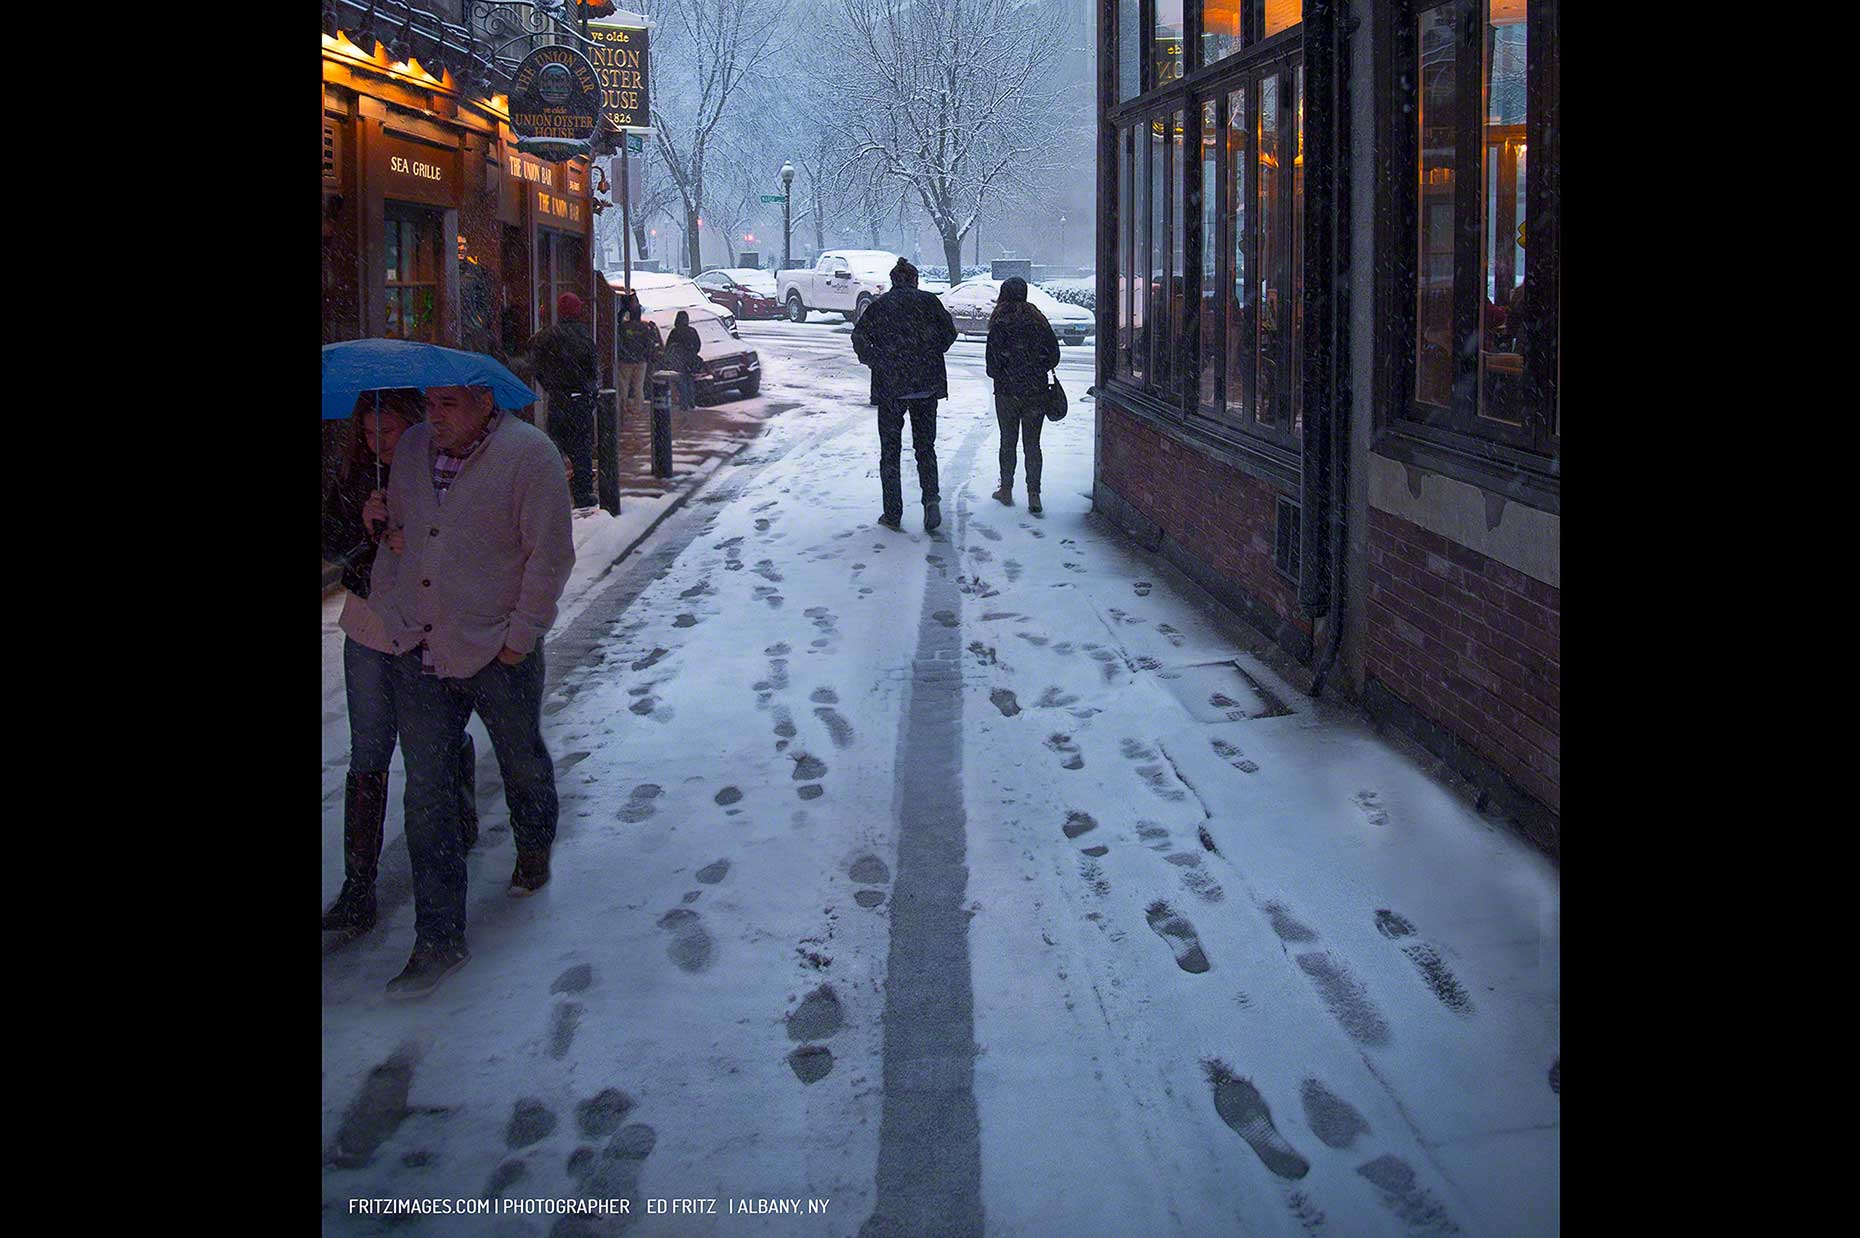 FritzImages | Travel and Outdoor Digital Images | image name = FIFP 20150315 St Paddys Day Drinking and breaking Bostons snowfall record iop